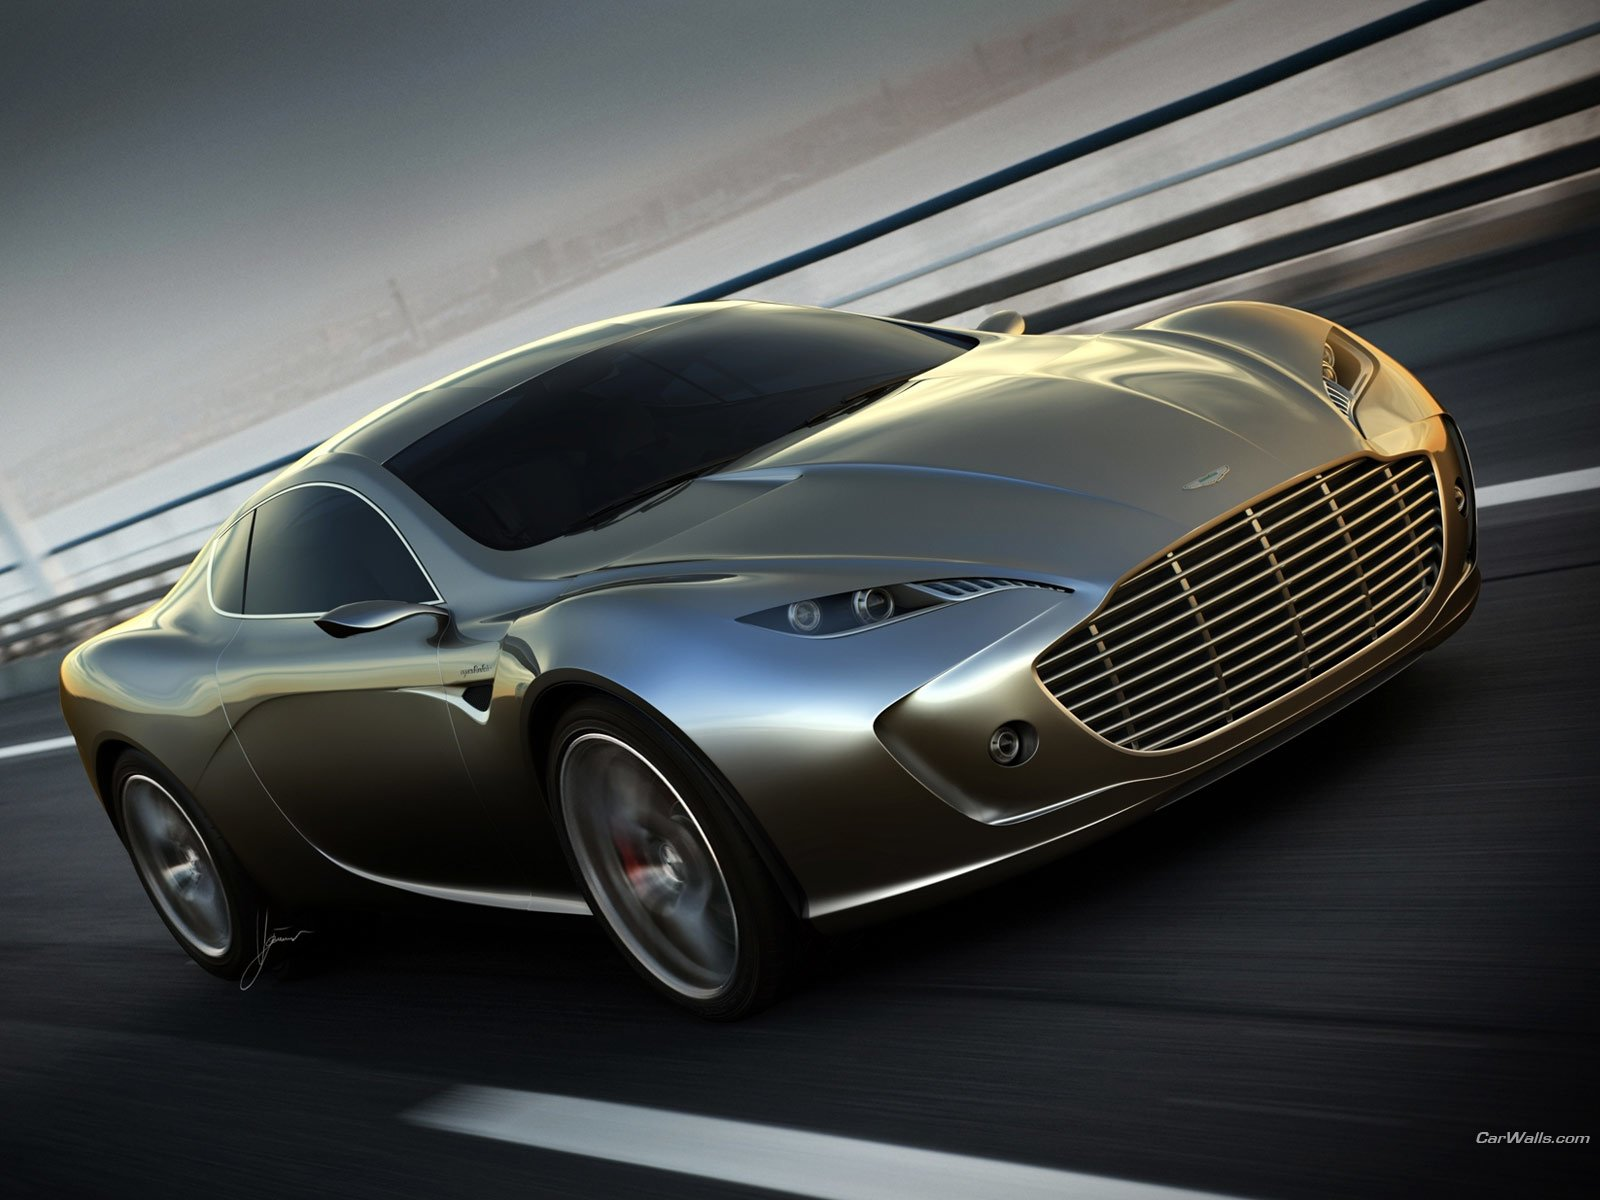 Latest Aston Martin Car Wallpapers Aston Martin Gauntlet Concept Free Download